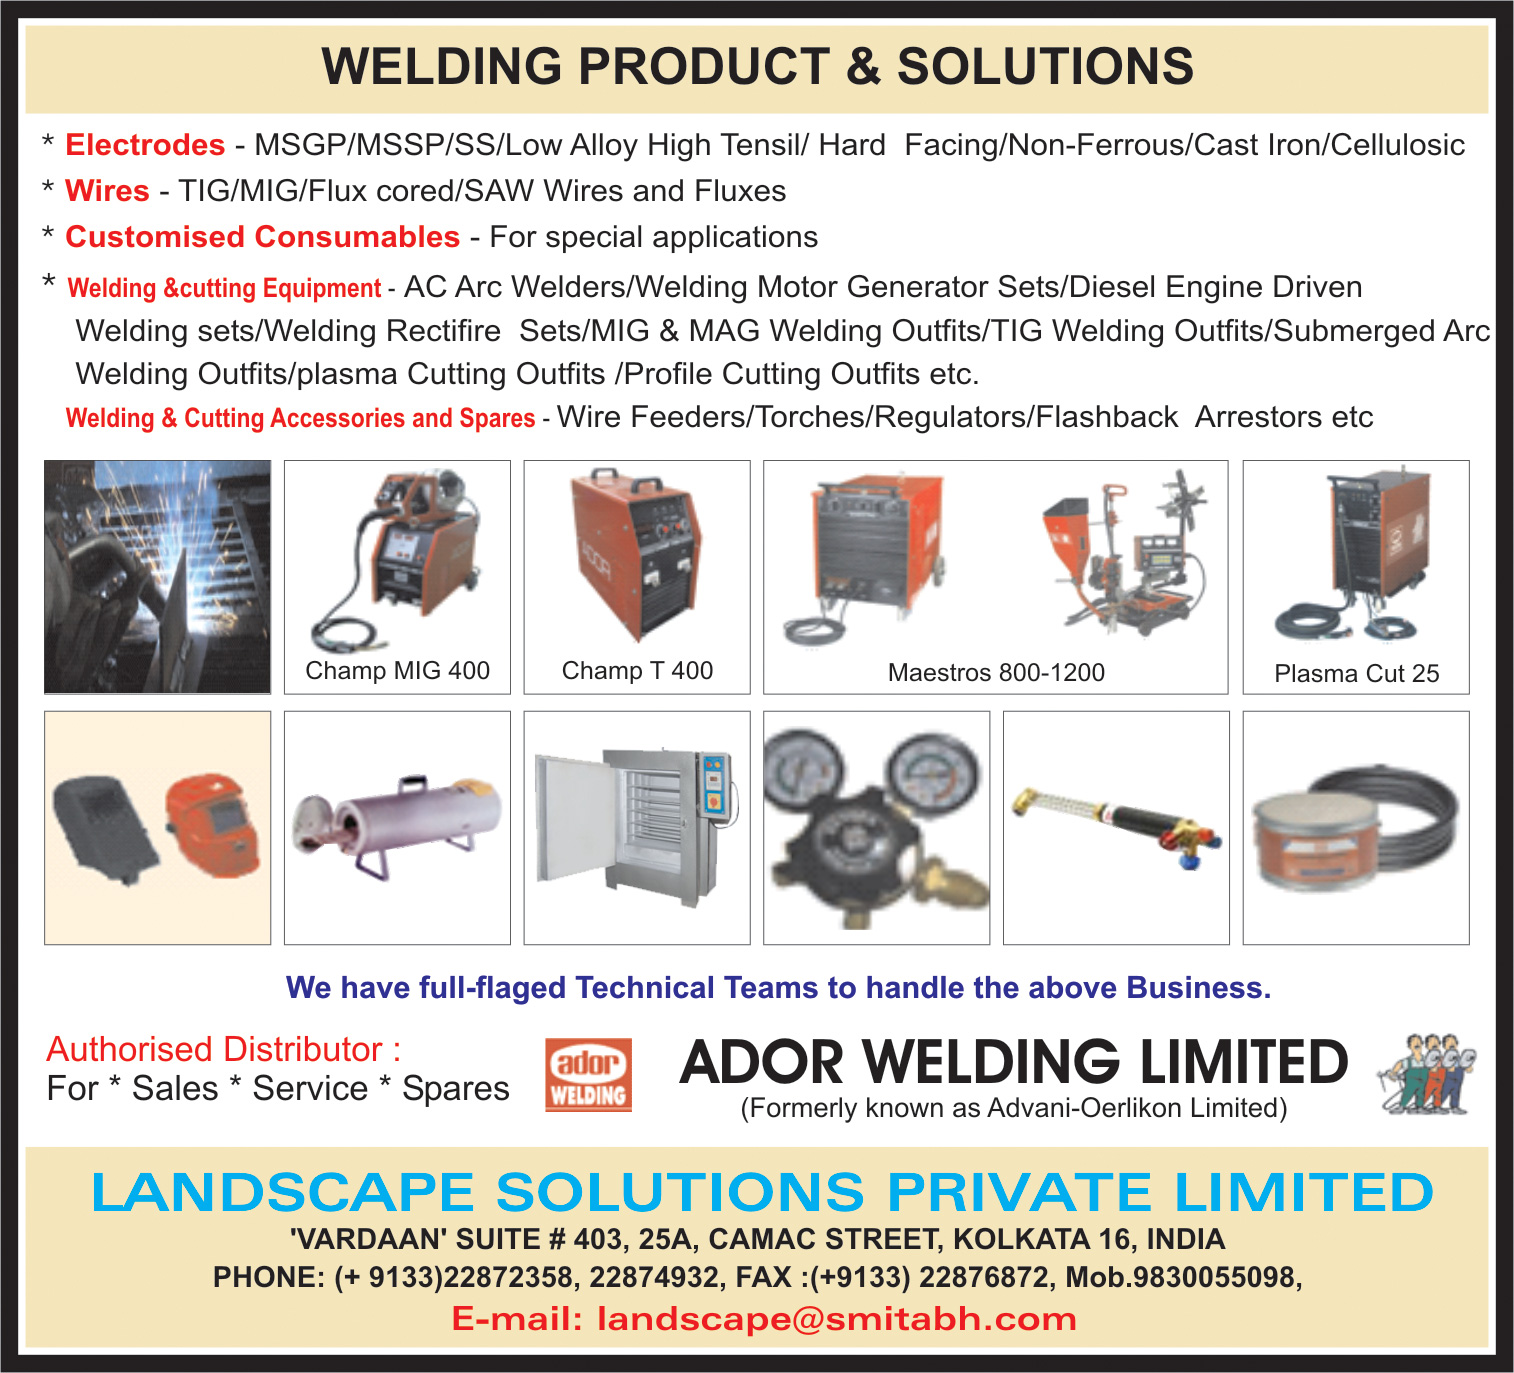 Welding Equipment, LANDSCAPE SOLUTIONS PVT LTD, Kolkata,  Yellow Pages, Kolkata, West Bengal